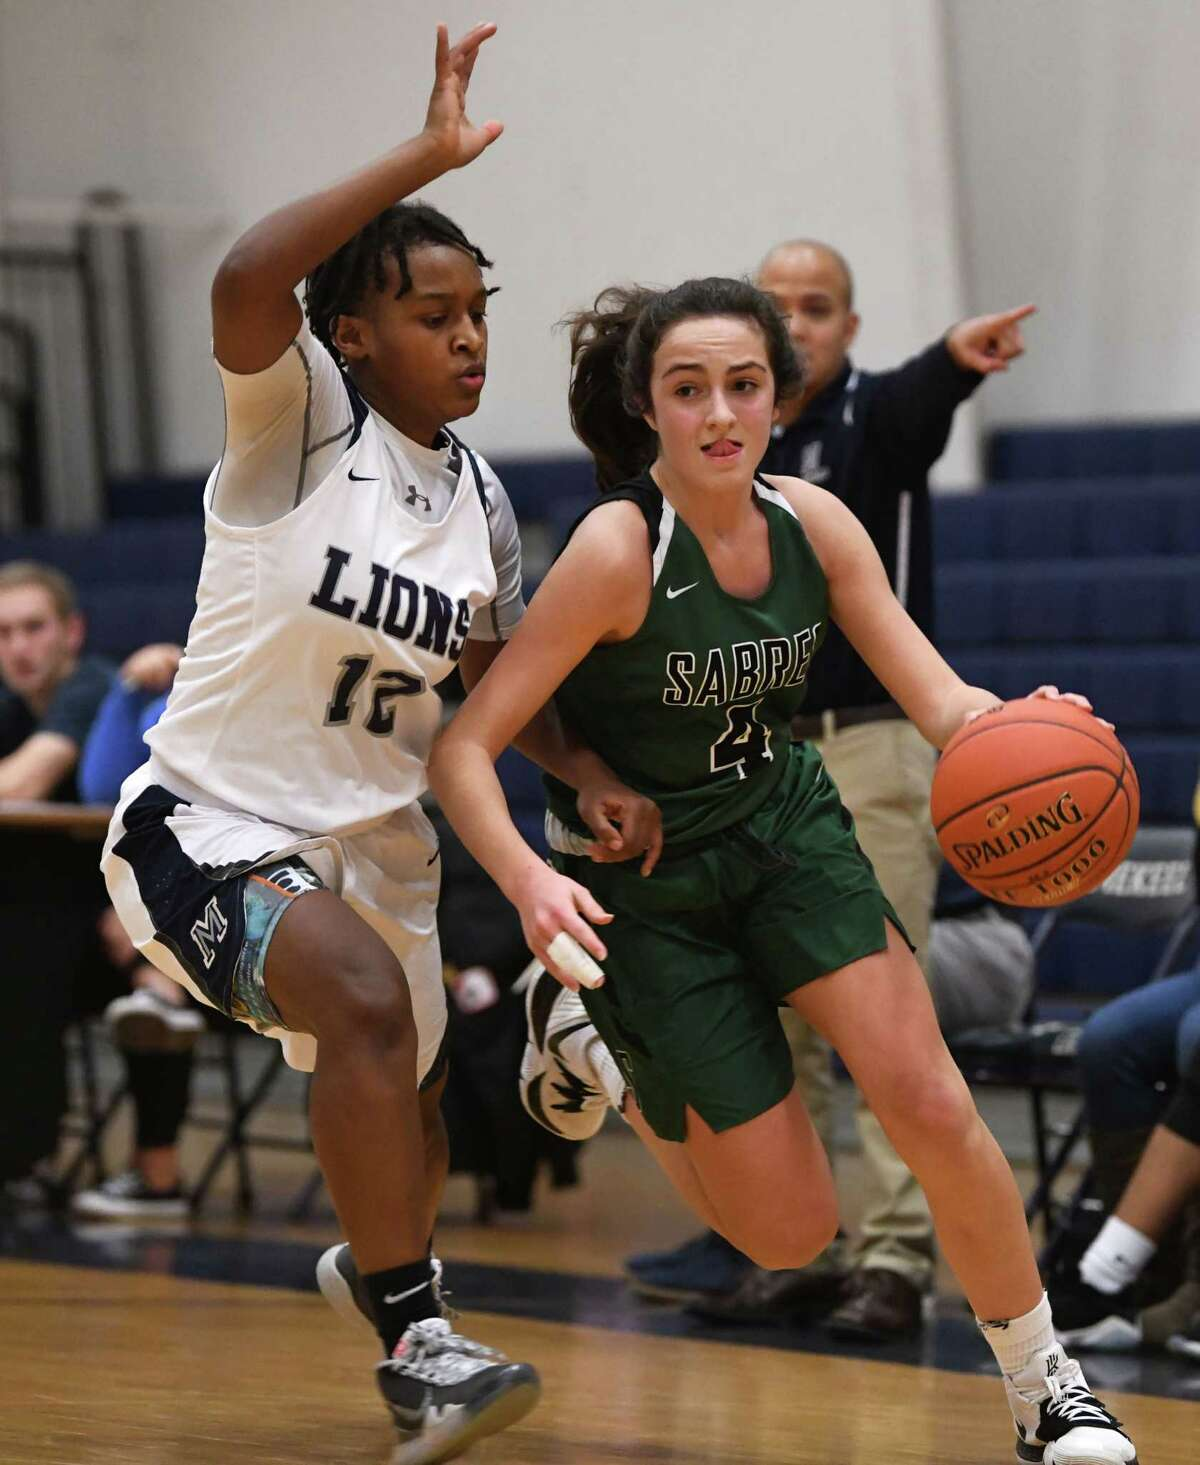 """Schalmont's Payton Graber, right, said """"I have been waiting for this for so long. I was so glad when I finally saw that,"""" about being able to start practicing on Feb. 1, pending county approval. (Lori Van Buren/Times Union)"""